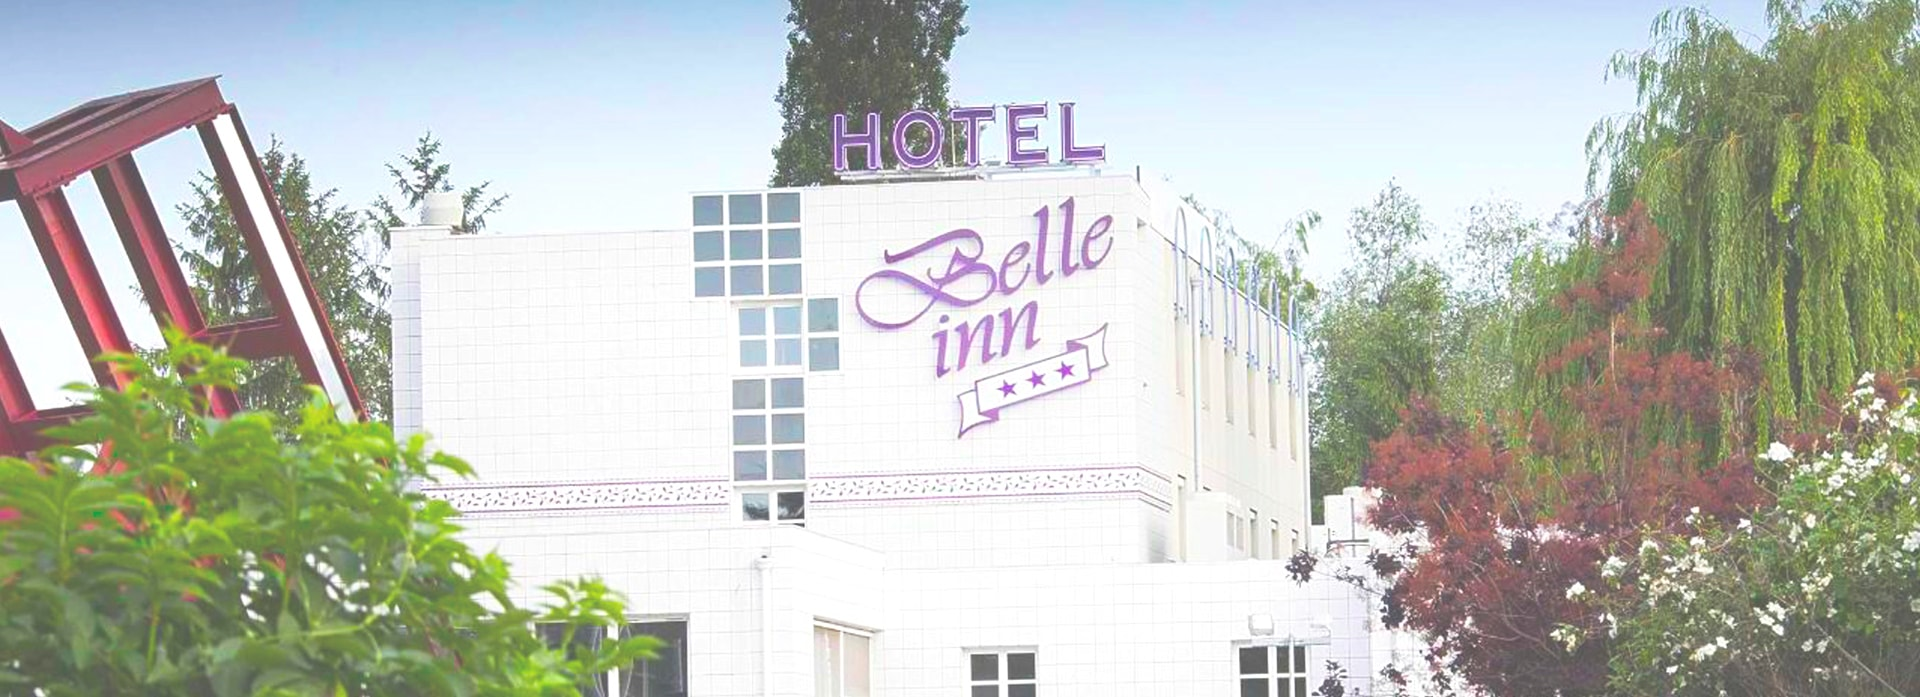 Photo de l\'hôtel Belle Inn, à Clermont Ferrand, Auvergne